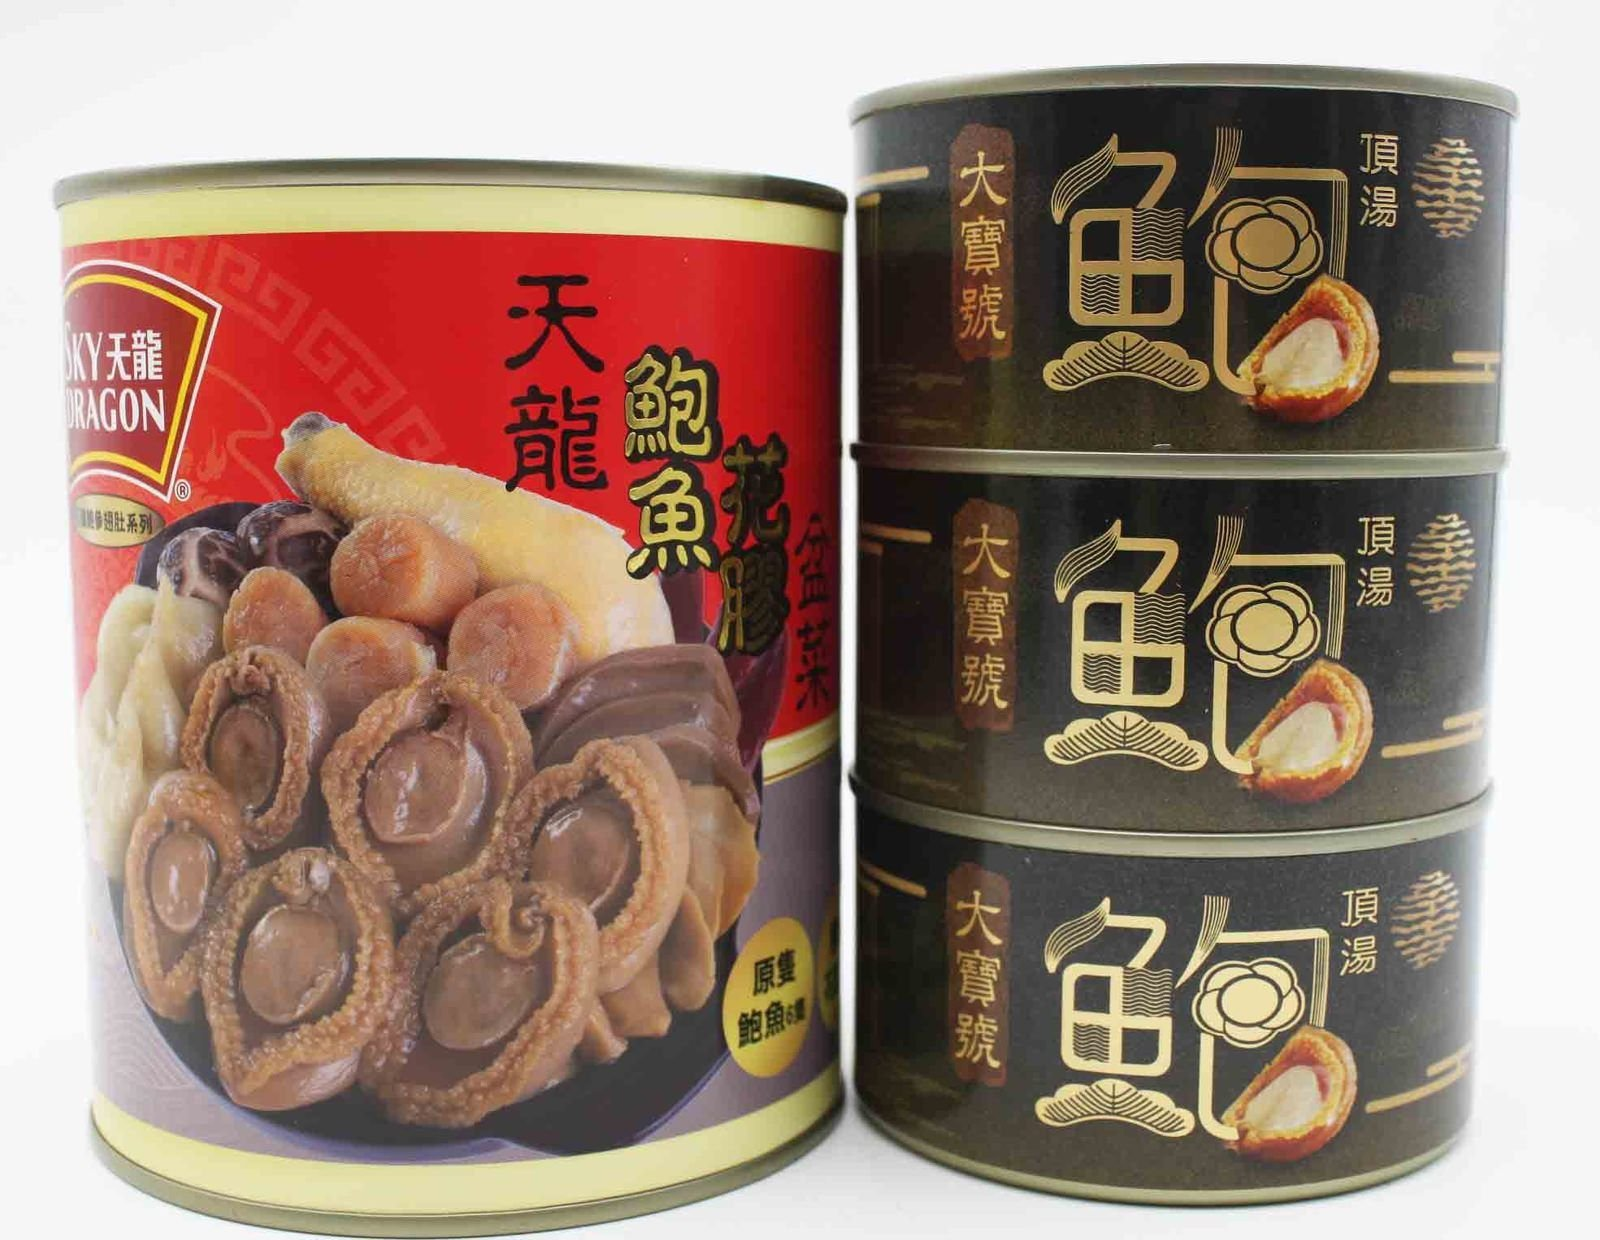 China Good Food Set-9 Canned Abalone 6 pieces (3 can) x Canned Bowl Feast (1 can) Free Airmail by China Good Food (Image #1)